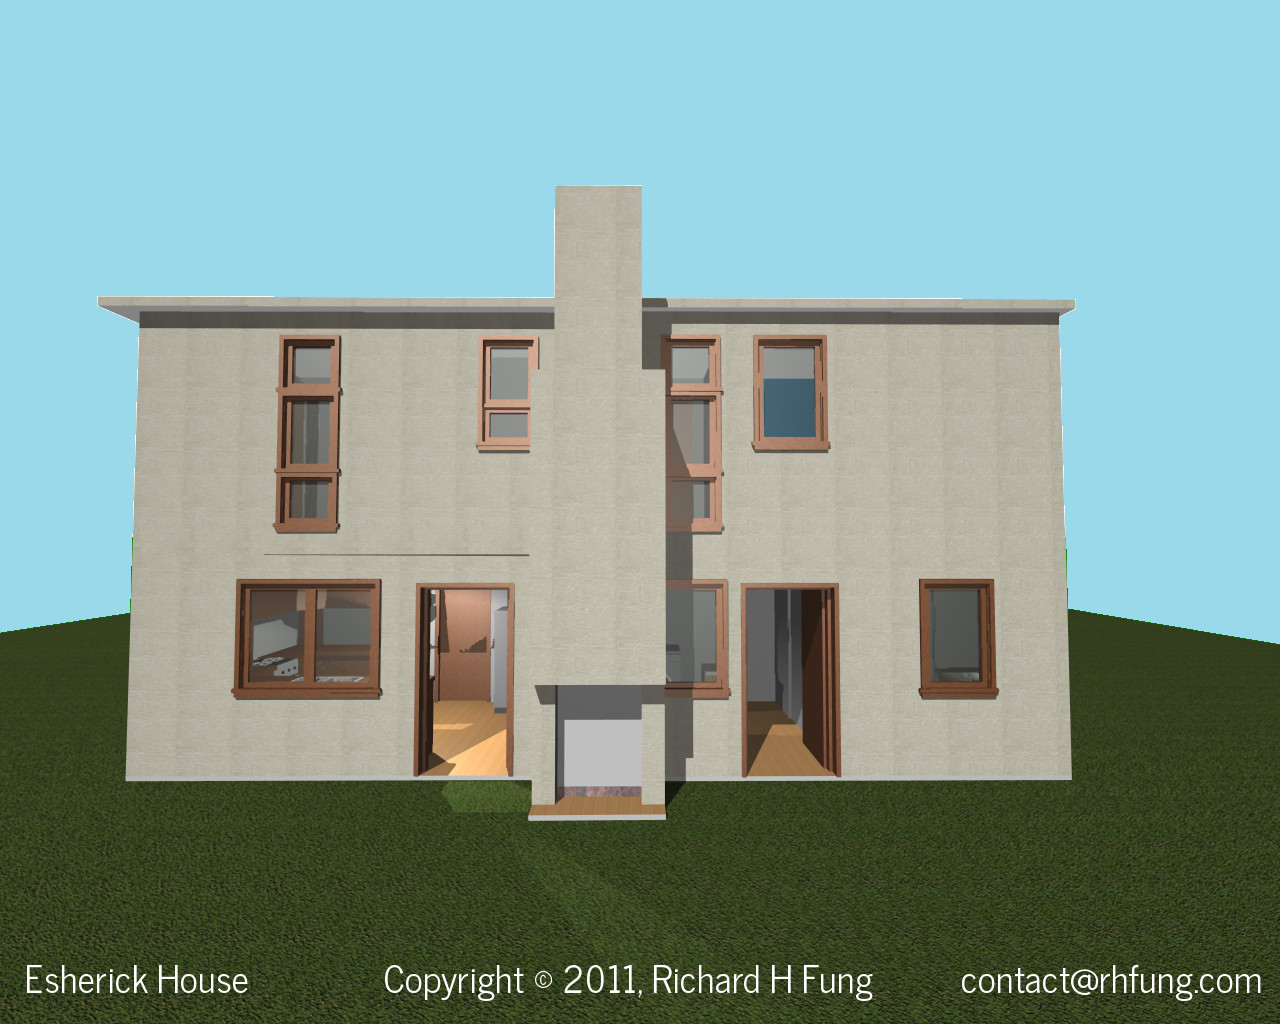 Esherick House kitchen in 3D rendering